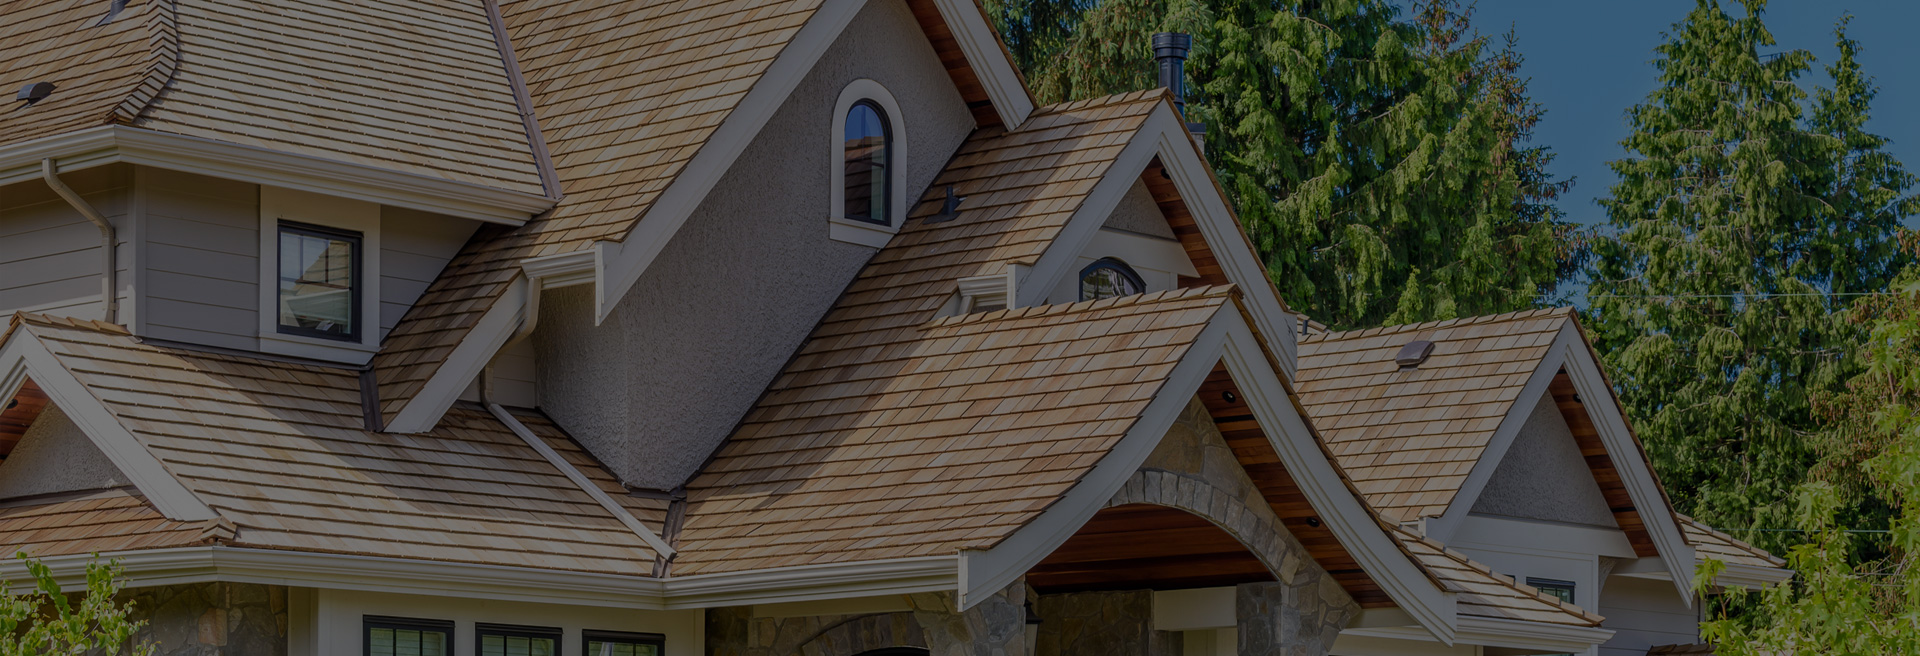 Chattanooga Roofing Company Roofing Contactors In Chattanooga